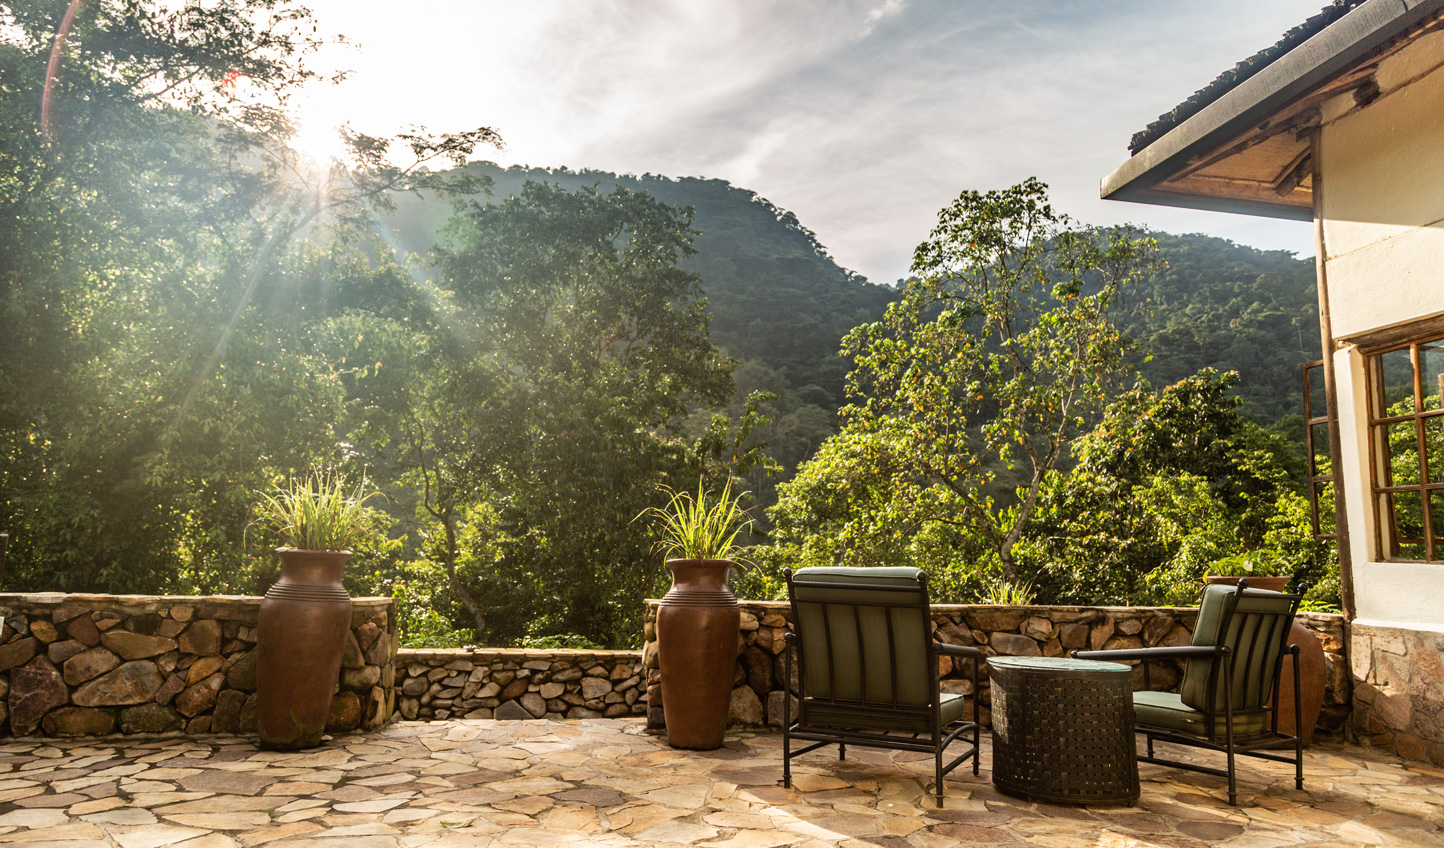 Enjoy a lazy morning out on the terrace